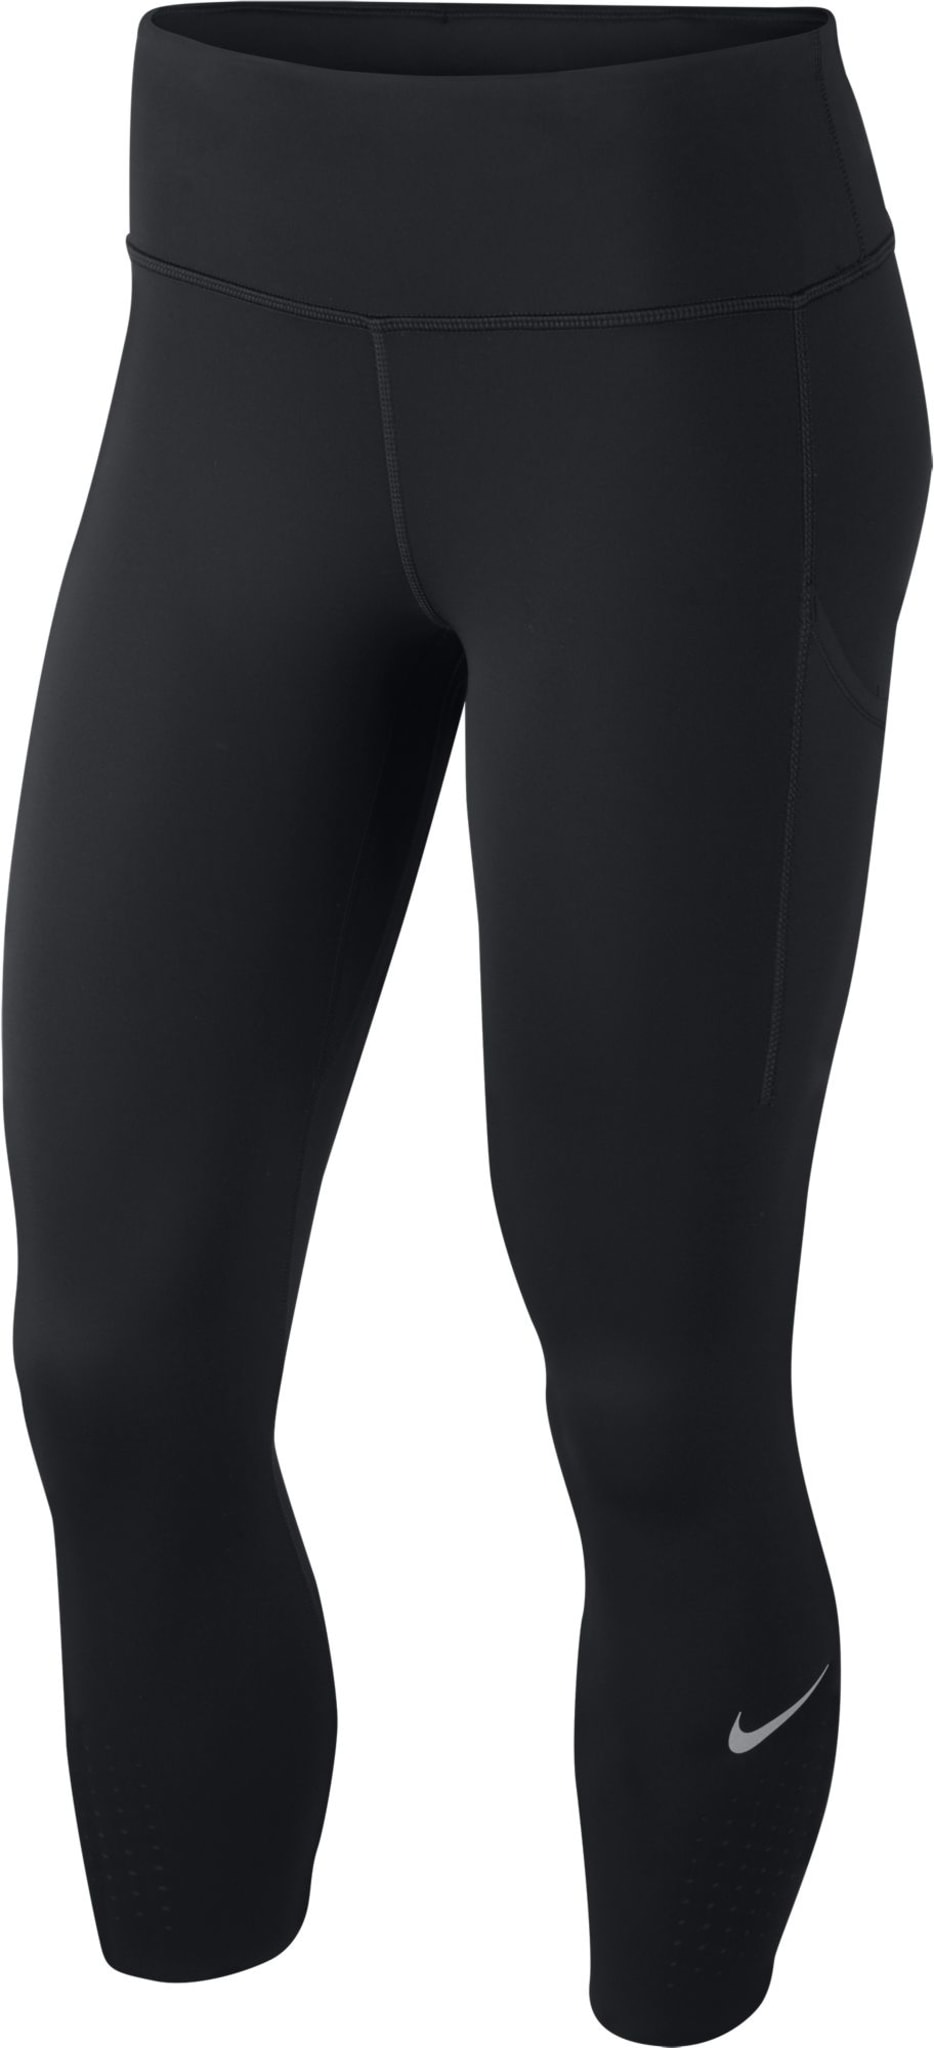 Epic Luxe Cropped Tights W